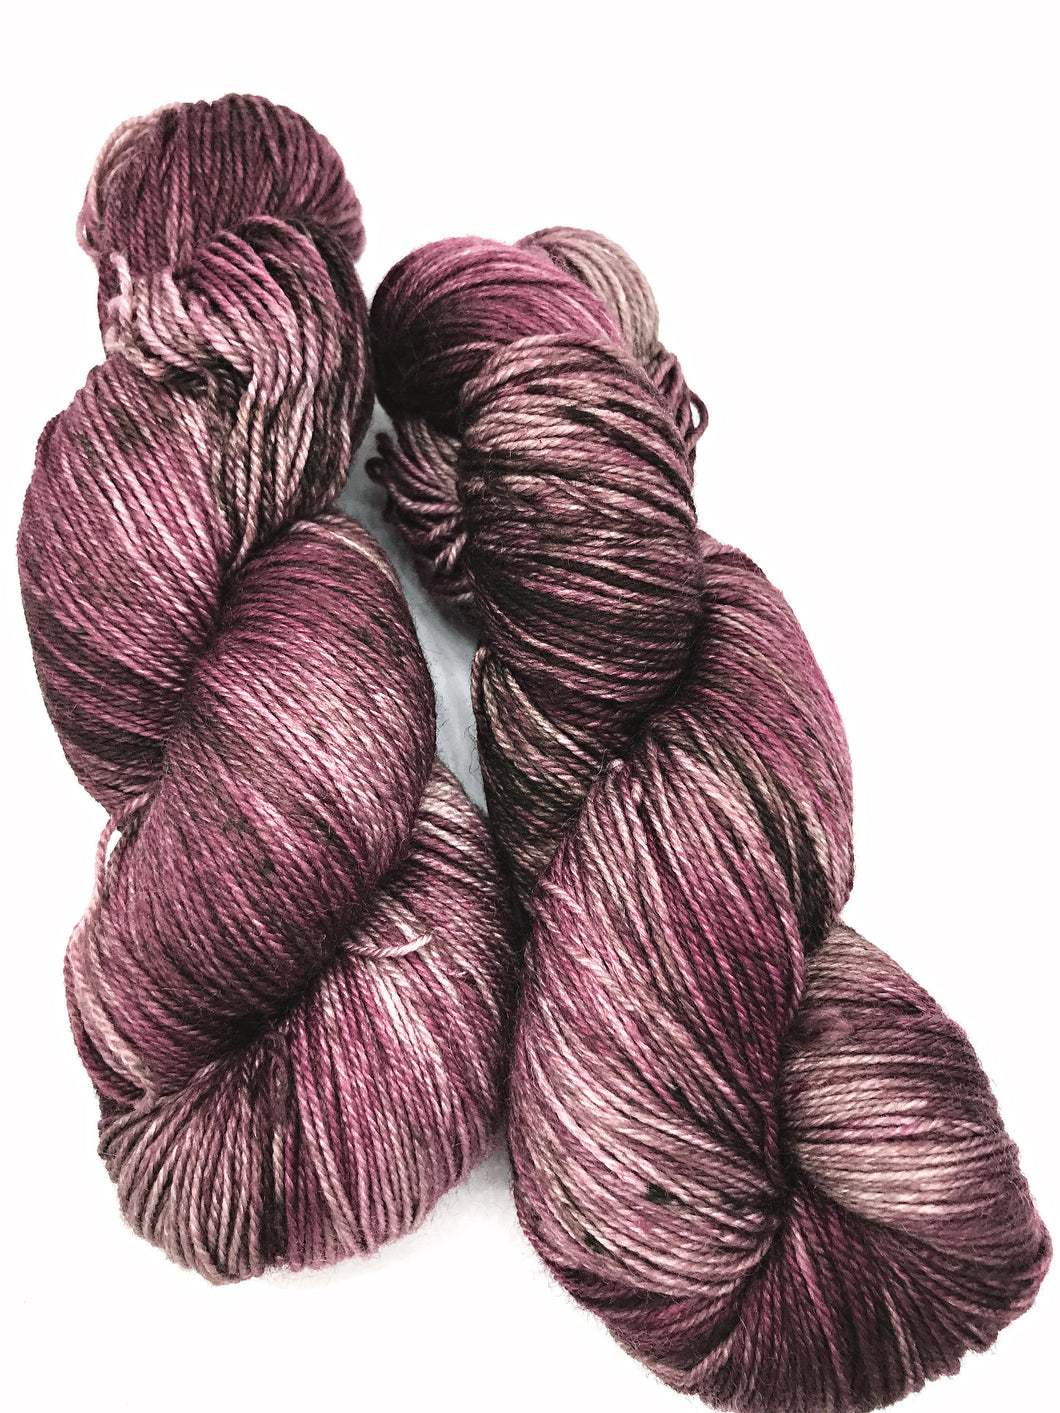 Mauvelous - Hand Dyed Fingering - 3 PLY - 80/20 SW Merino/ Nylon in mauve purple for crochet and knitting, toques, shawls, sock yarn